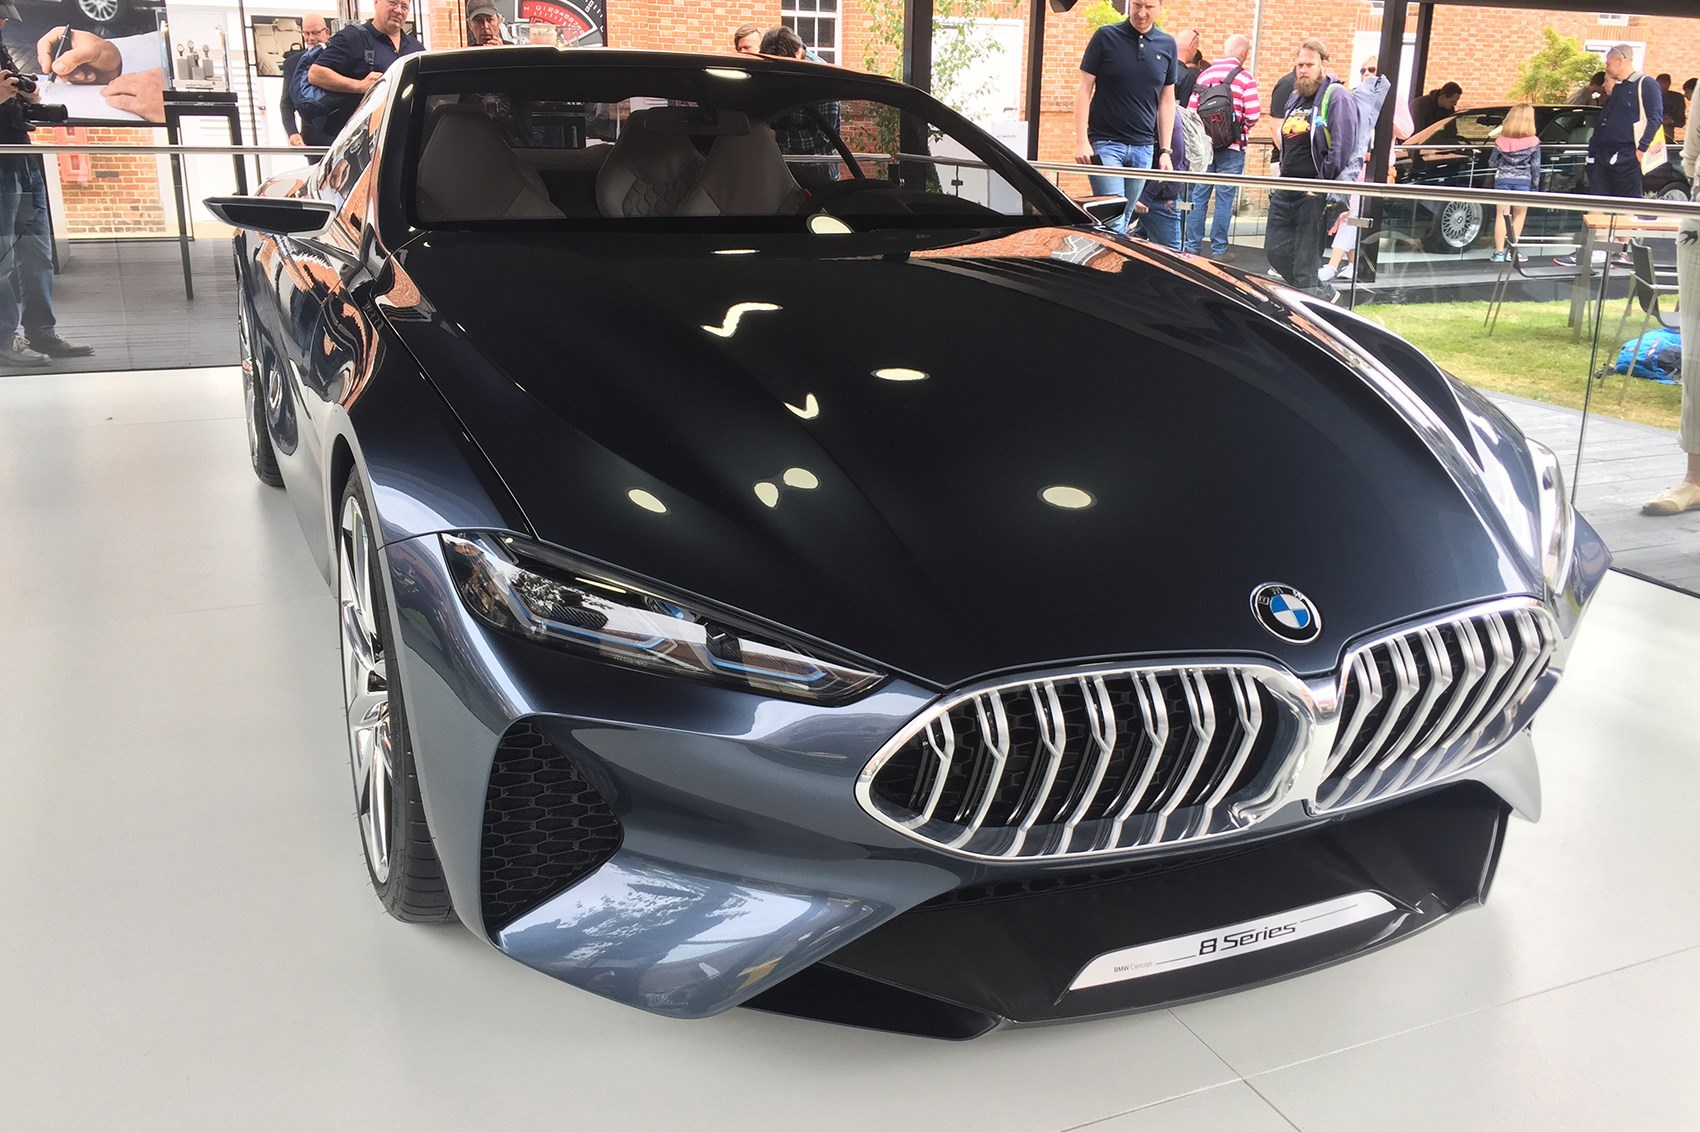 You are here shop home gt gt categories gt gt motorsport gt gt goodwood - Bmw 8 Series Concept Designer John Buckingham Talks Us Through His Creation It S By No Means Aggressive But It Does Look Focused